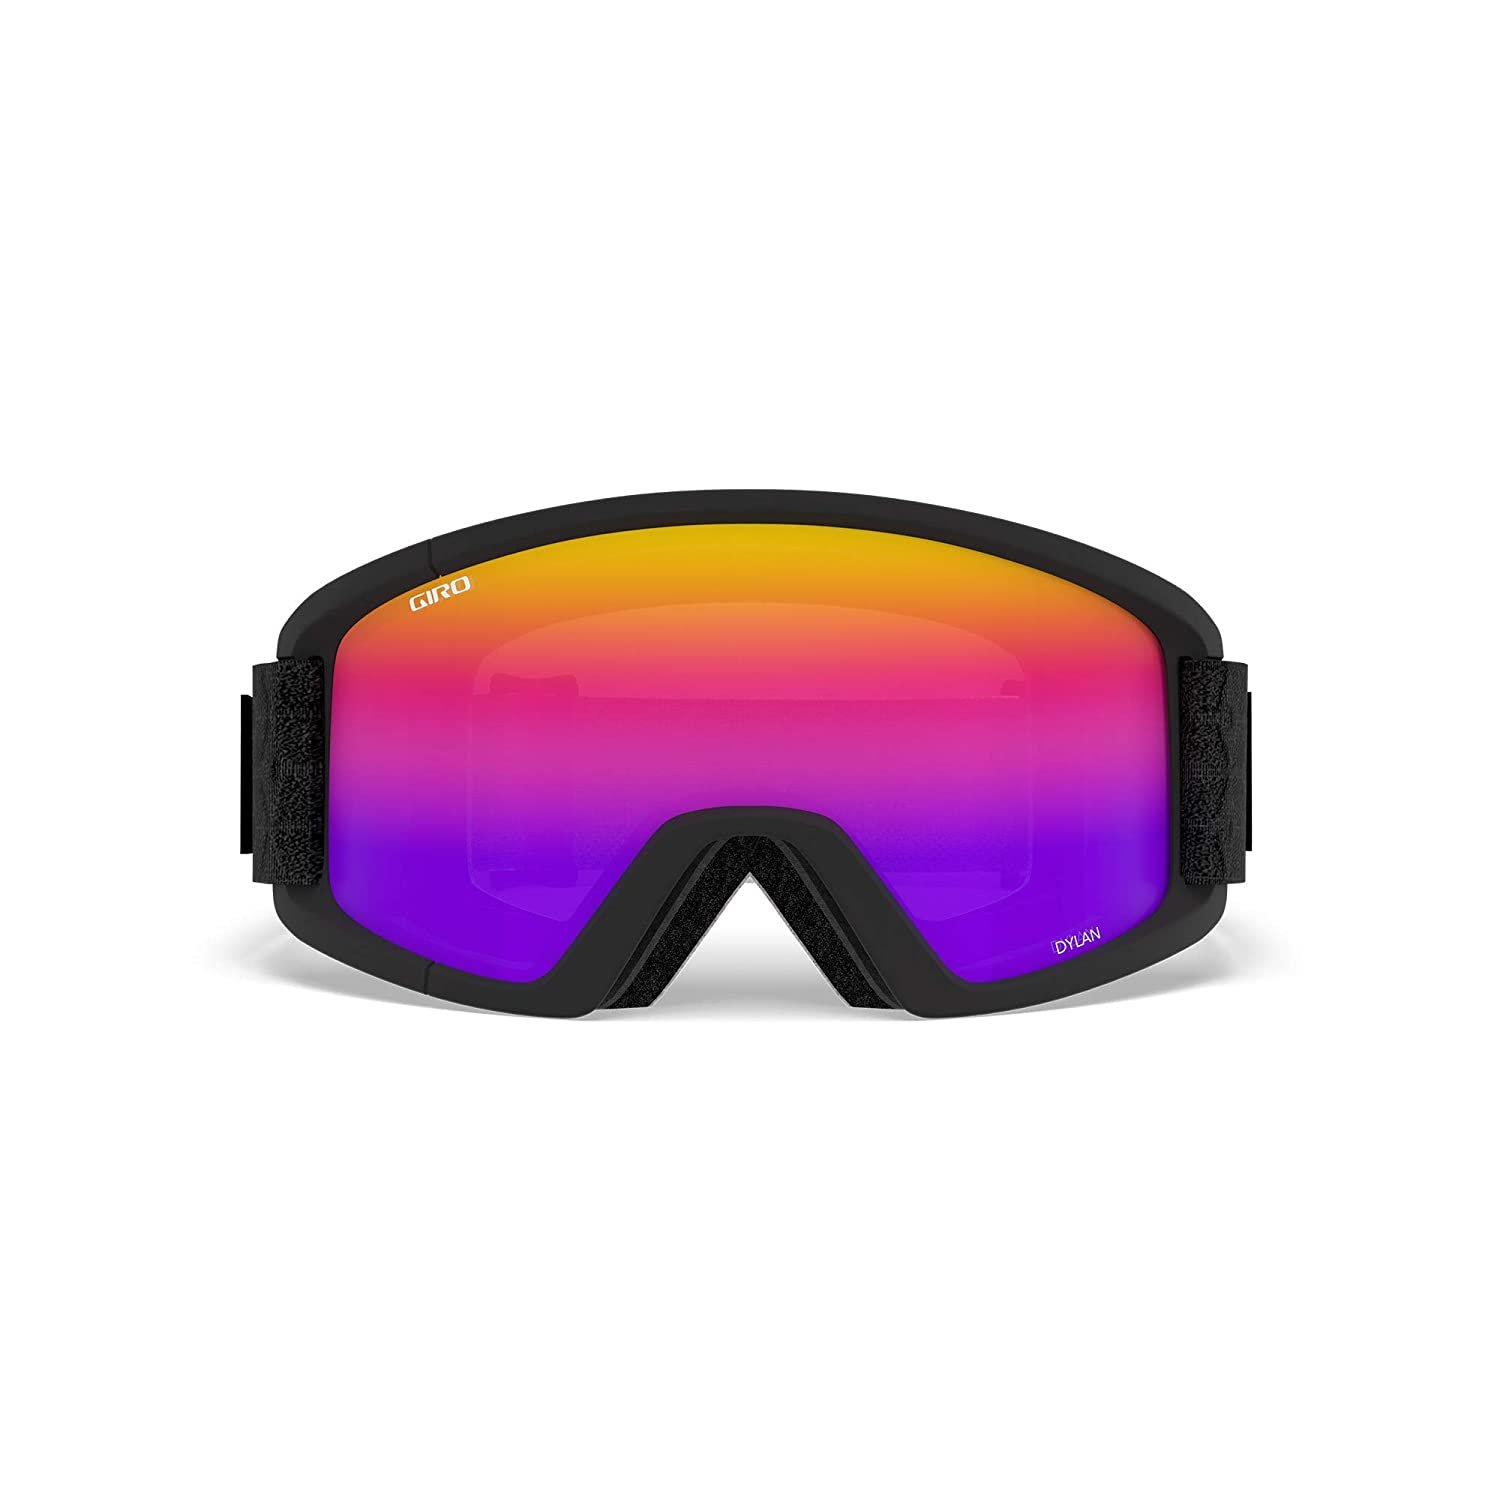 7970eb2b204c Amazon.com   Giro Dylan Women s Snow Goggles Berry Stonewashed - Grey  Cobalt Yellow   Sports   Outdoors